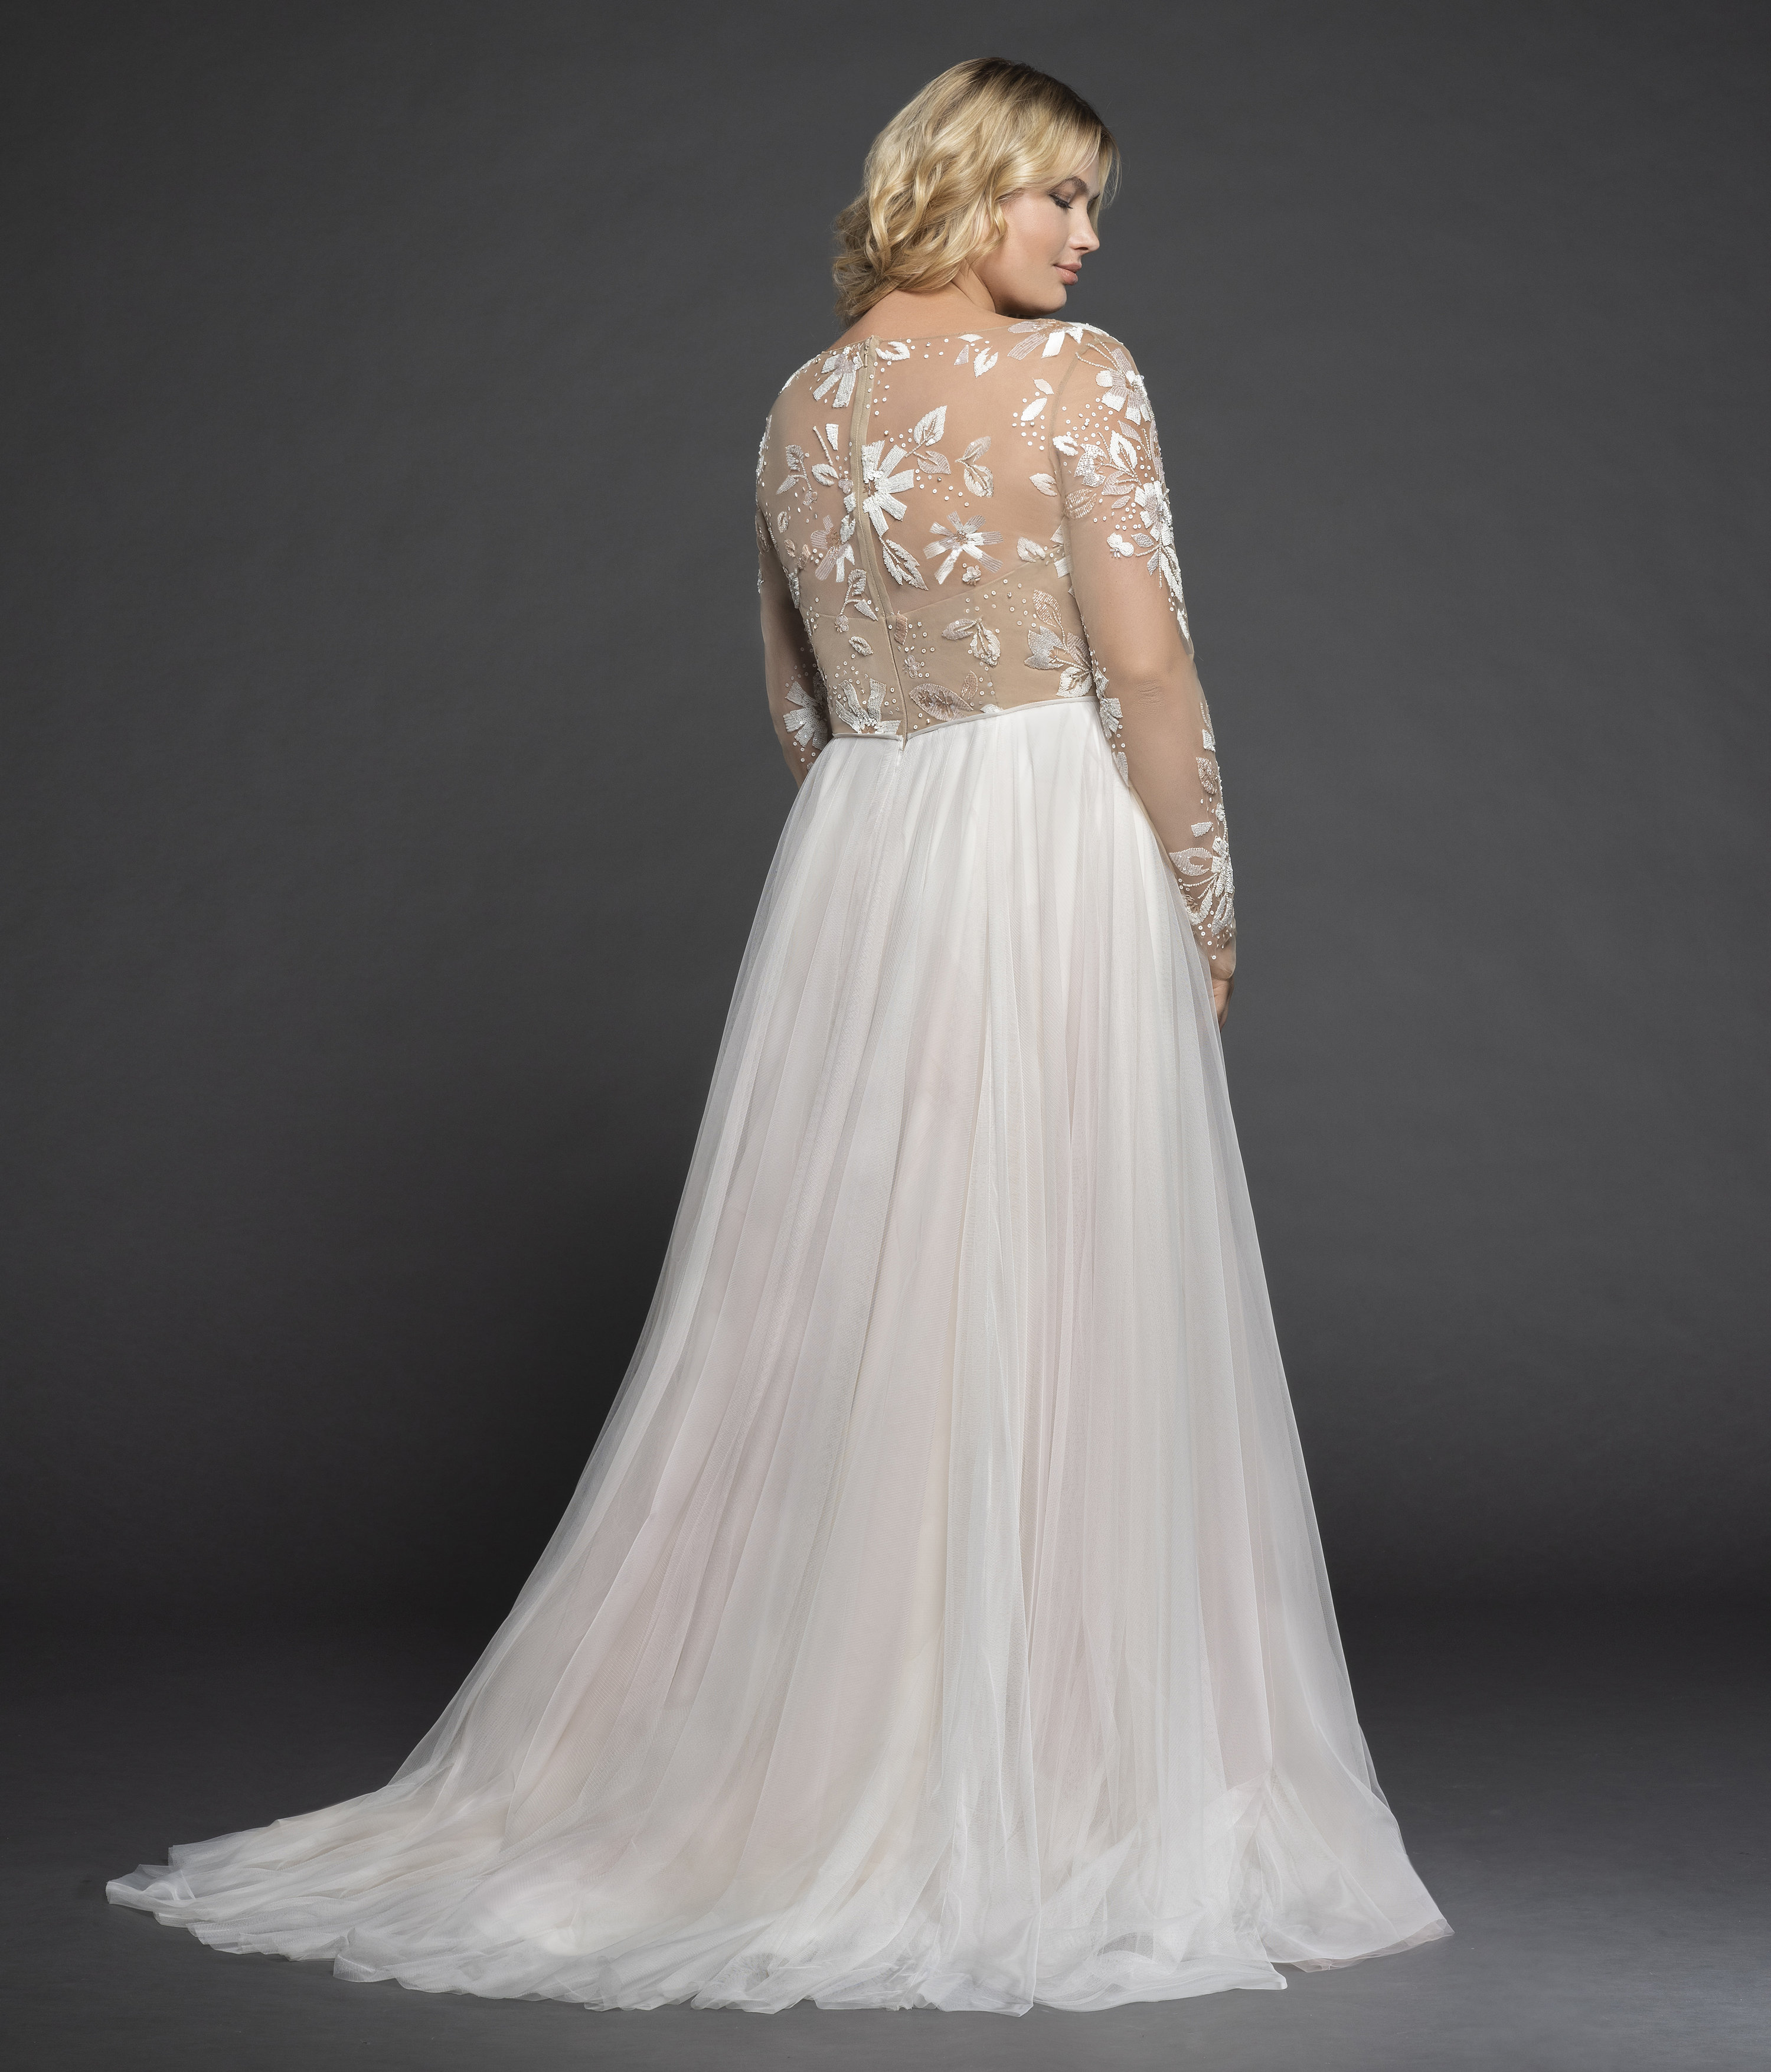 a96b8c954ec7e Bridal Gowns and Wedding Dresses by JLM Couture - Style 6553